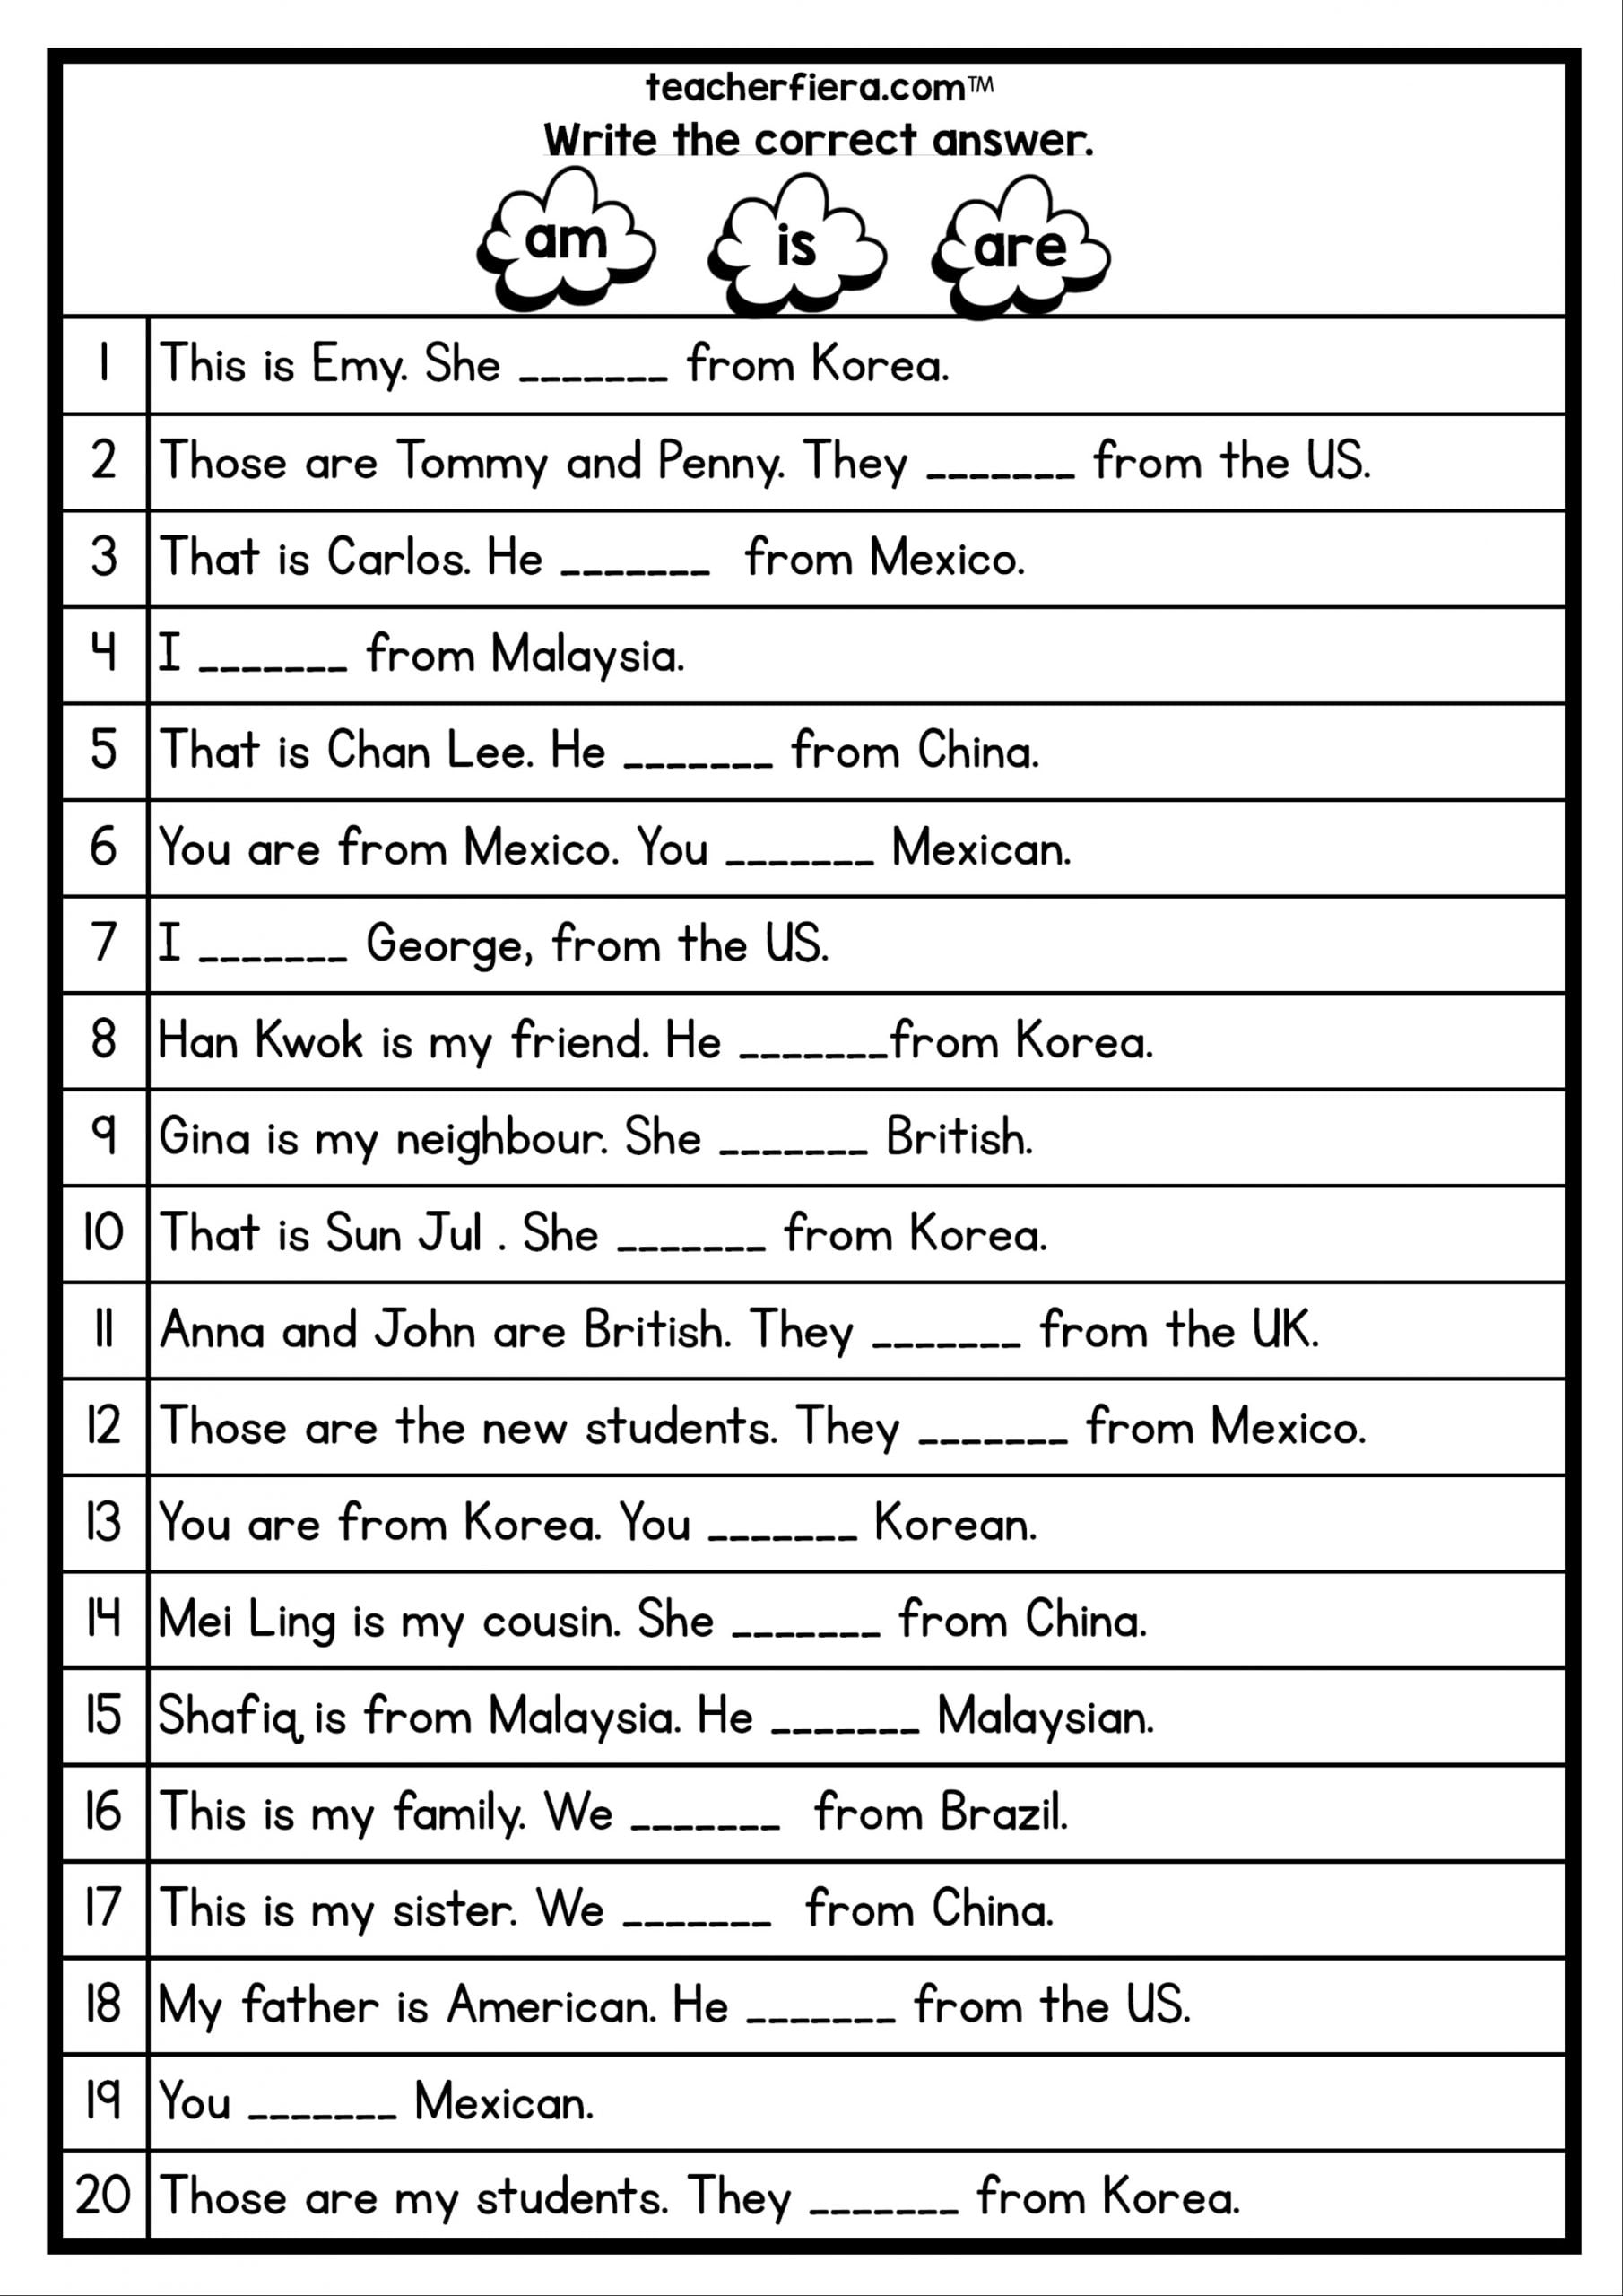 Year 3 English Worksheet Malta Printable Worksheets And Activities For Teachers Parents Tutors And Homeschool Families